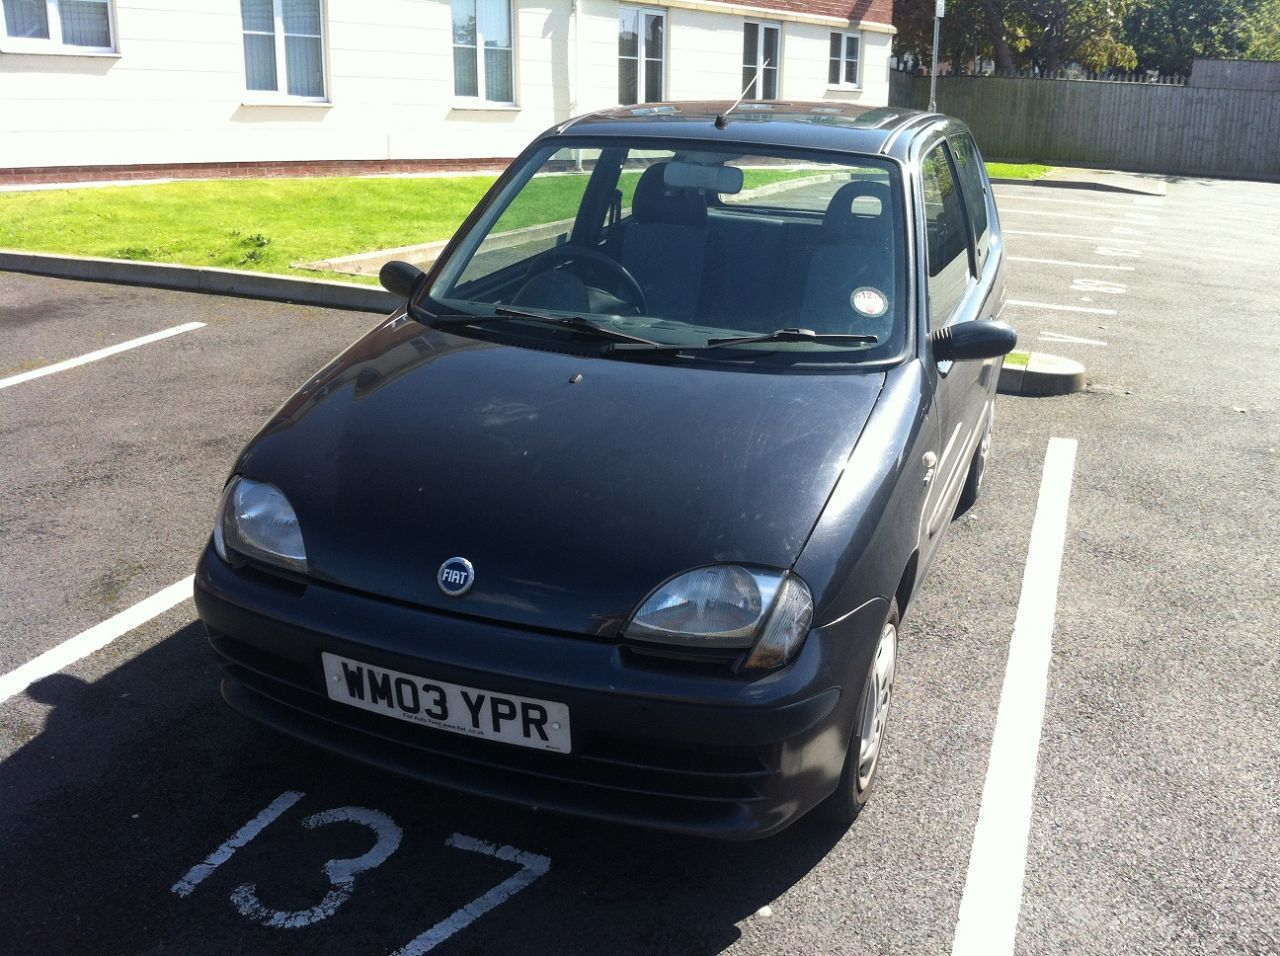 photos this sporting weeke in b by seicento yard vagdave scrap fiat saw flickr a last